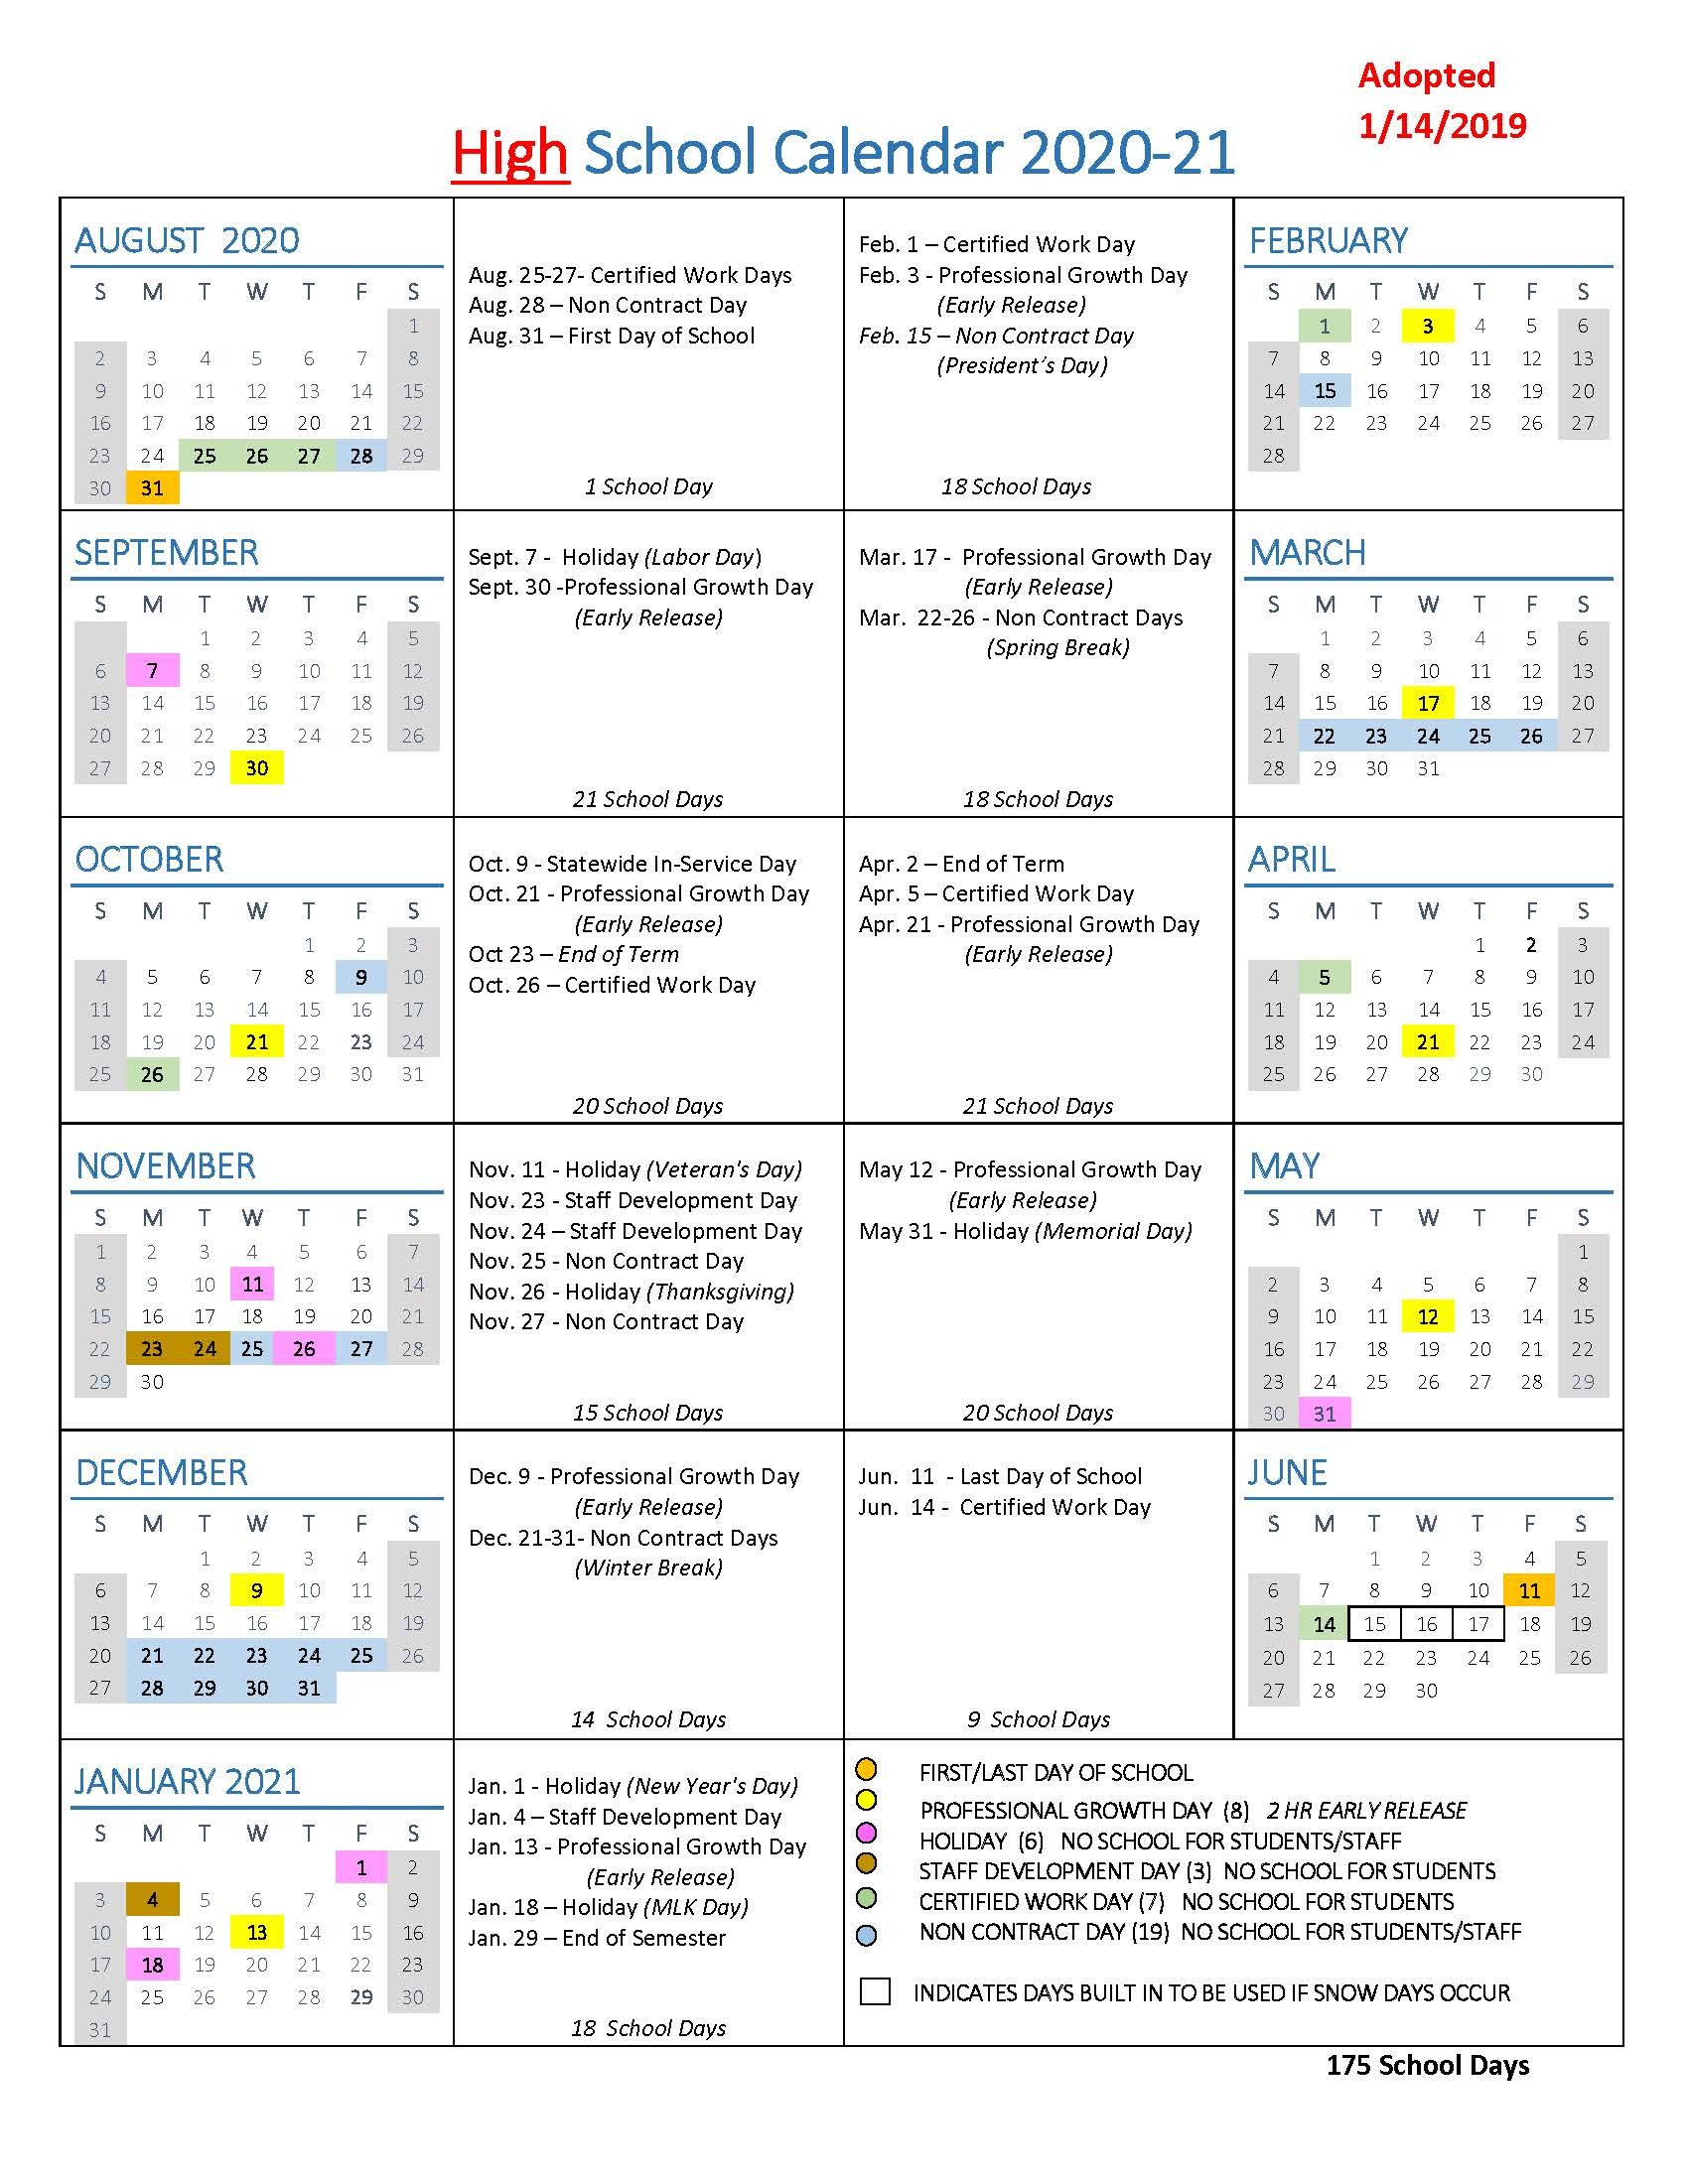 Calendar January to March 2019 Más Recientemente Liberado School Year Calendars School Year Calendars Of Calendar January to March 2019 Más Recientes Petersburg Library